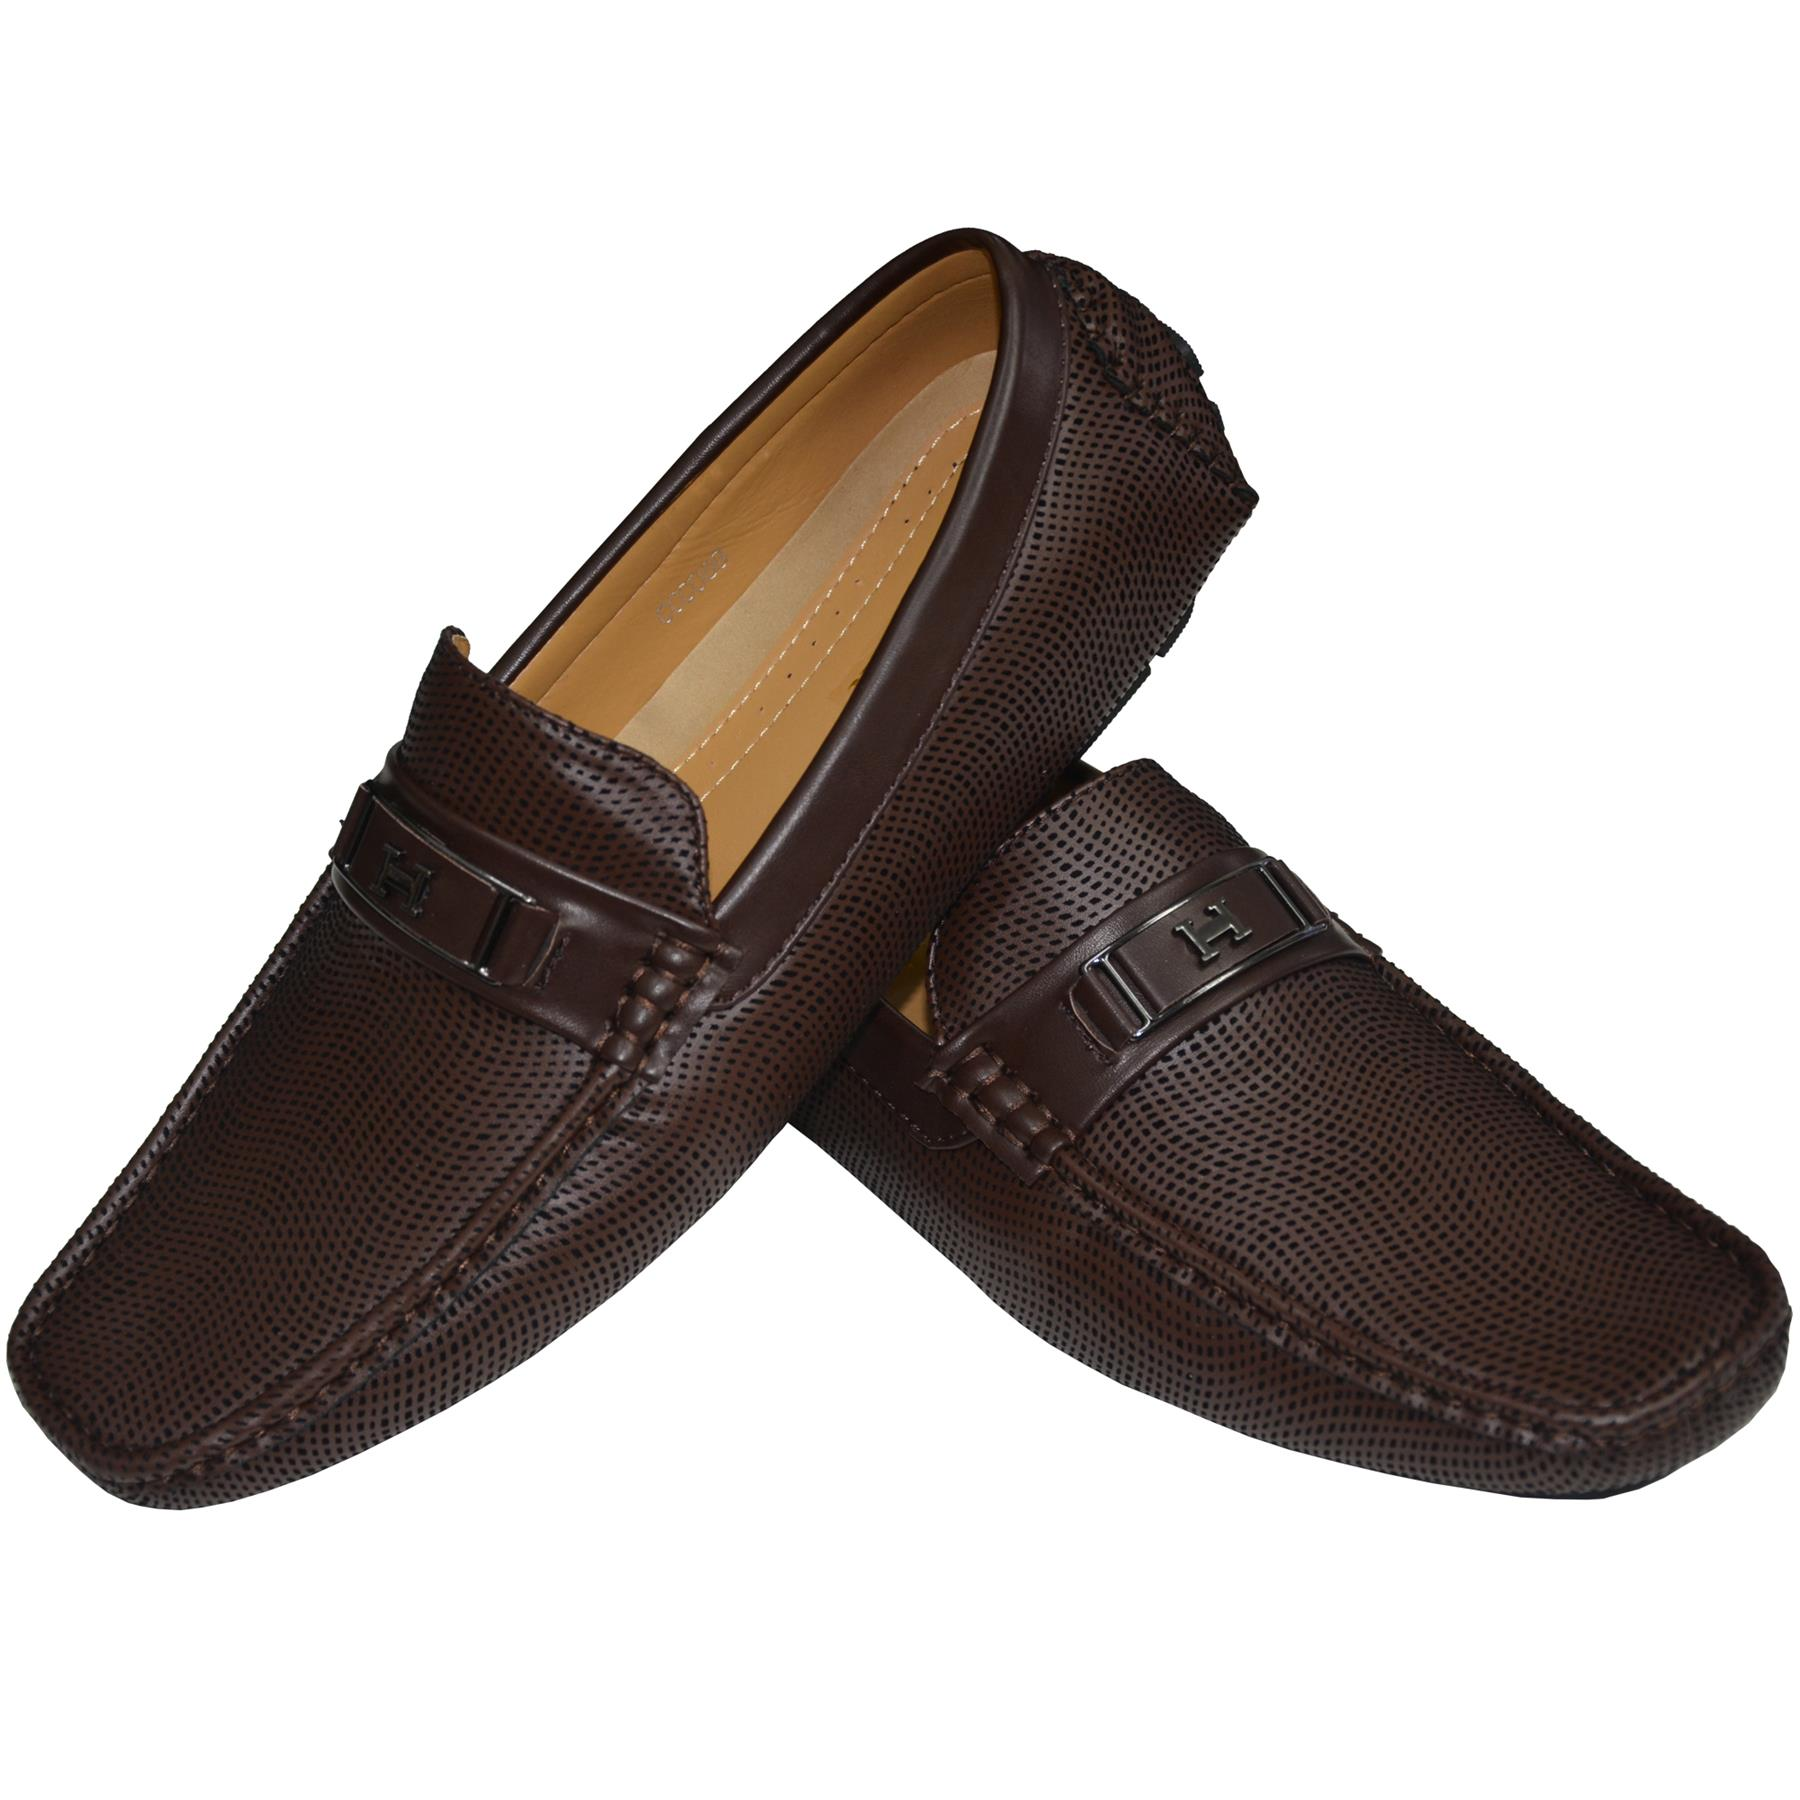 Mens-Suede-Loafers-Shoes-Moccasin-Slip-On-Casual-Boat-Driving-UK-Sizes-6-12 thumbnail 16